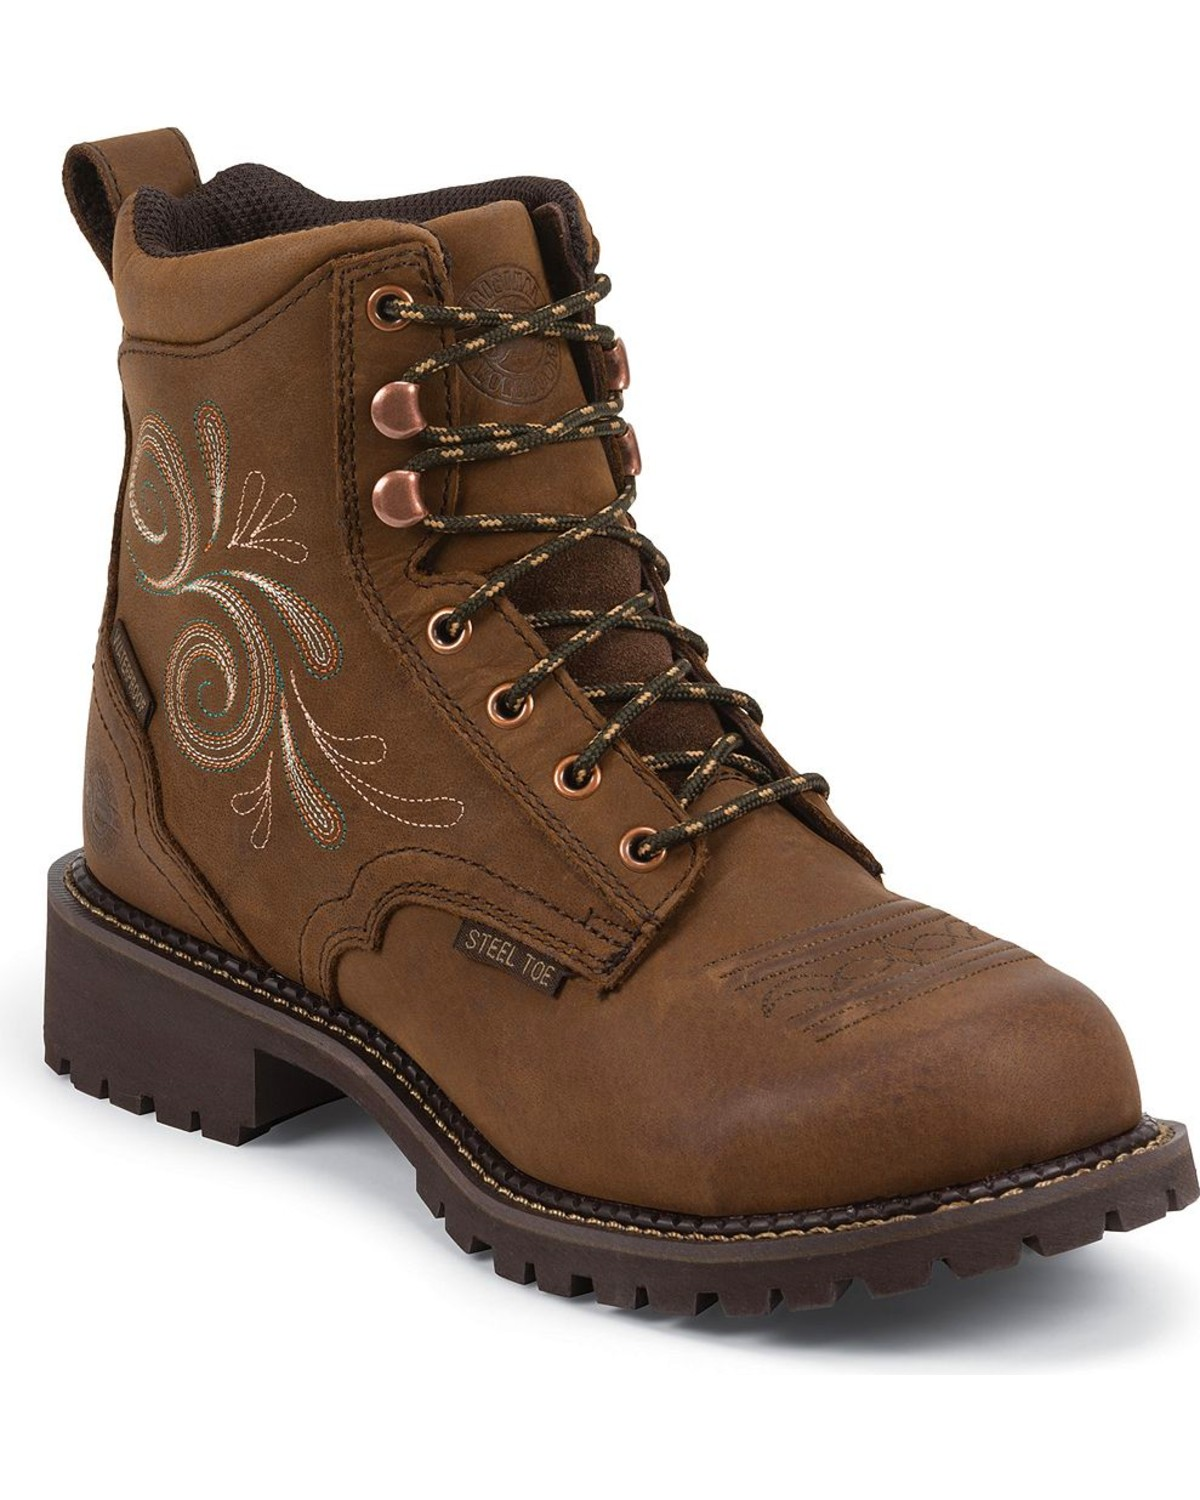 boots you on wear terakoch comforter london most boot pinterest and fly the best women comfortable images womens ever for will